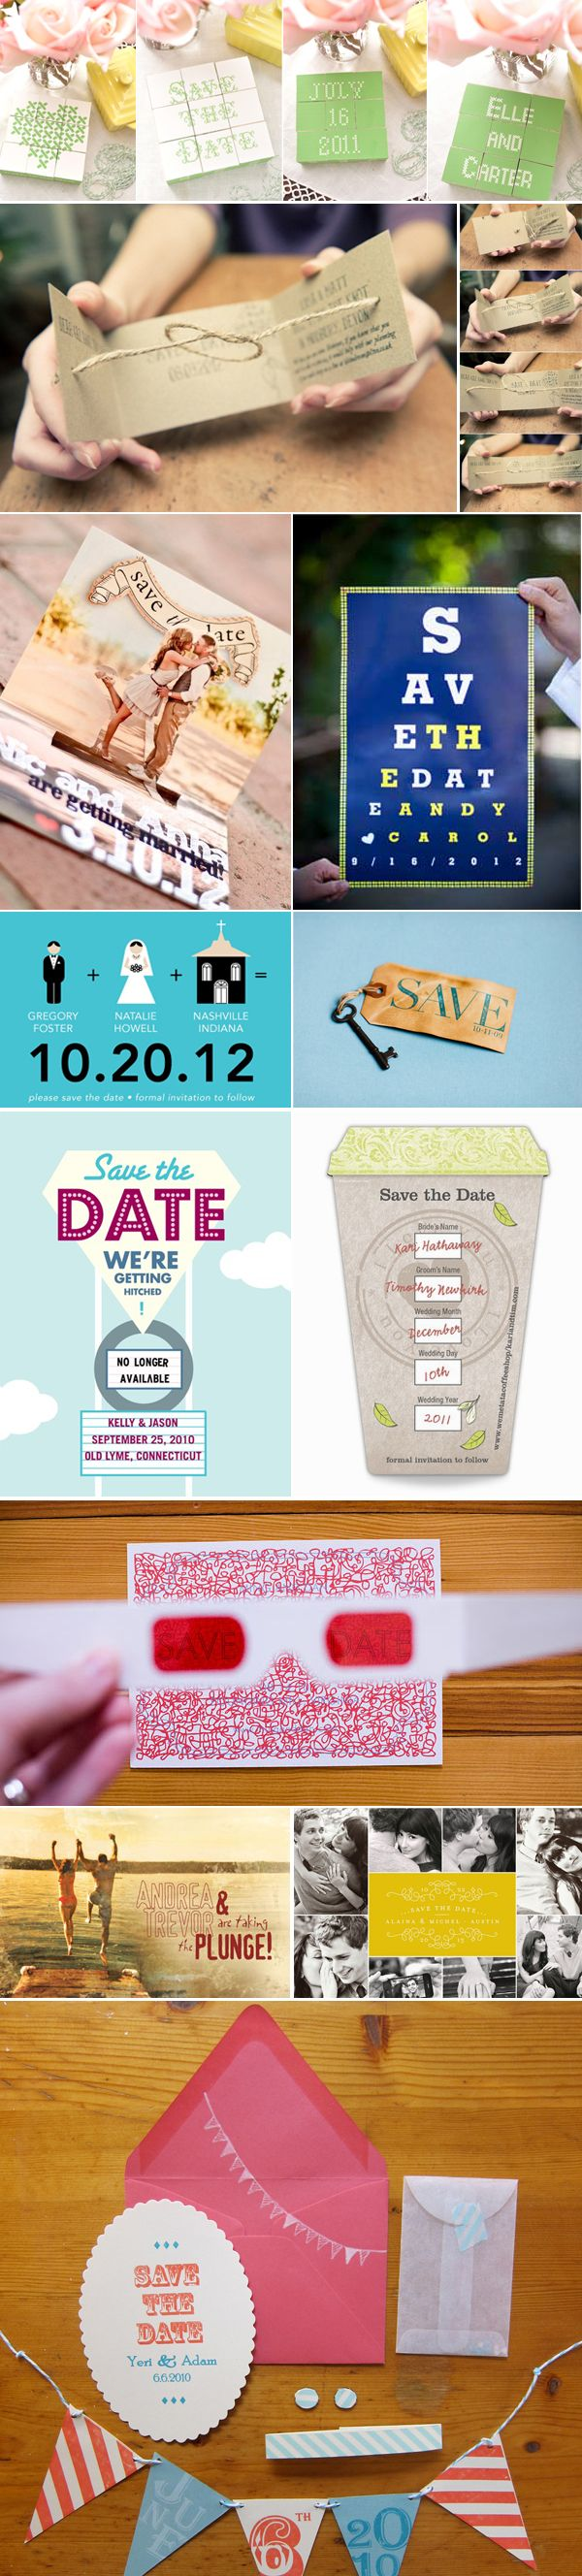 best wedding invitations images on pinterest invitations cards